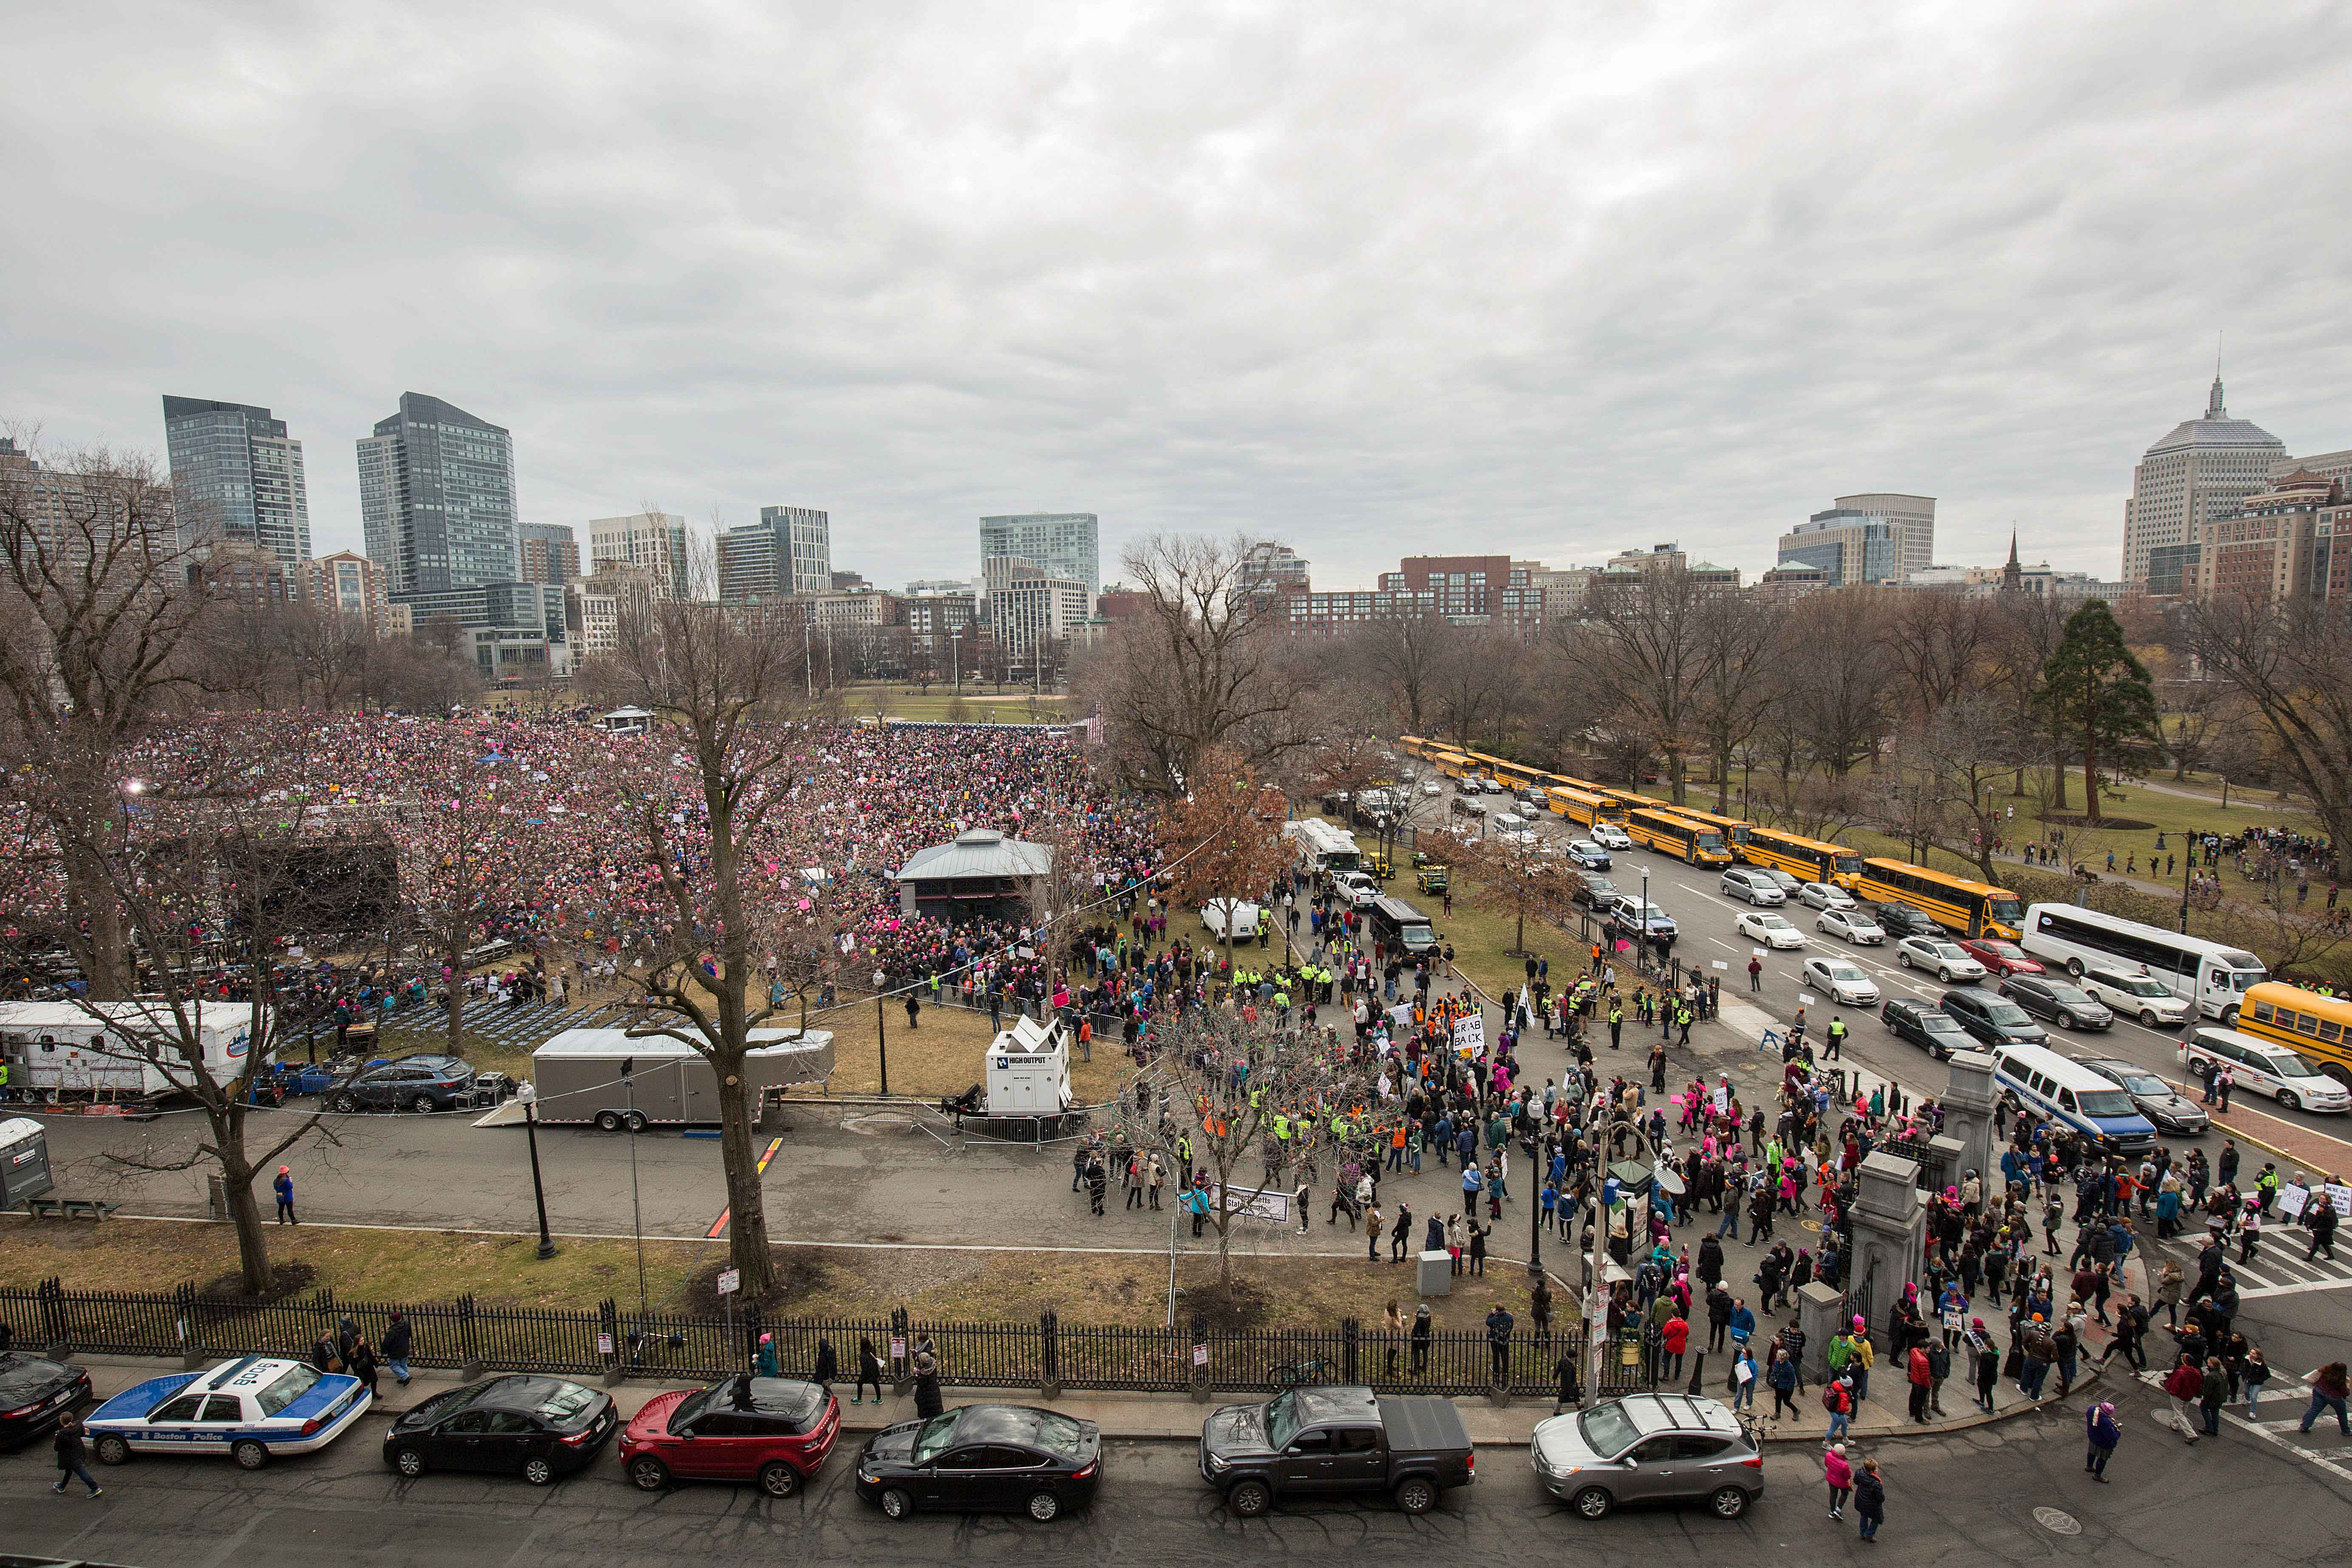 An estimated 37,000 people attended the Women's March in Boston on Jan. 21, 2017. (Photo by Alastair Pike)